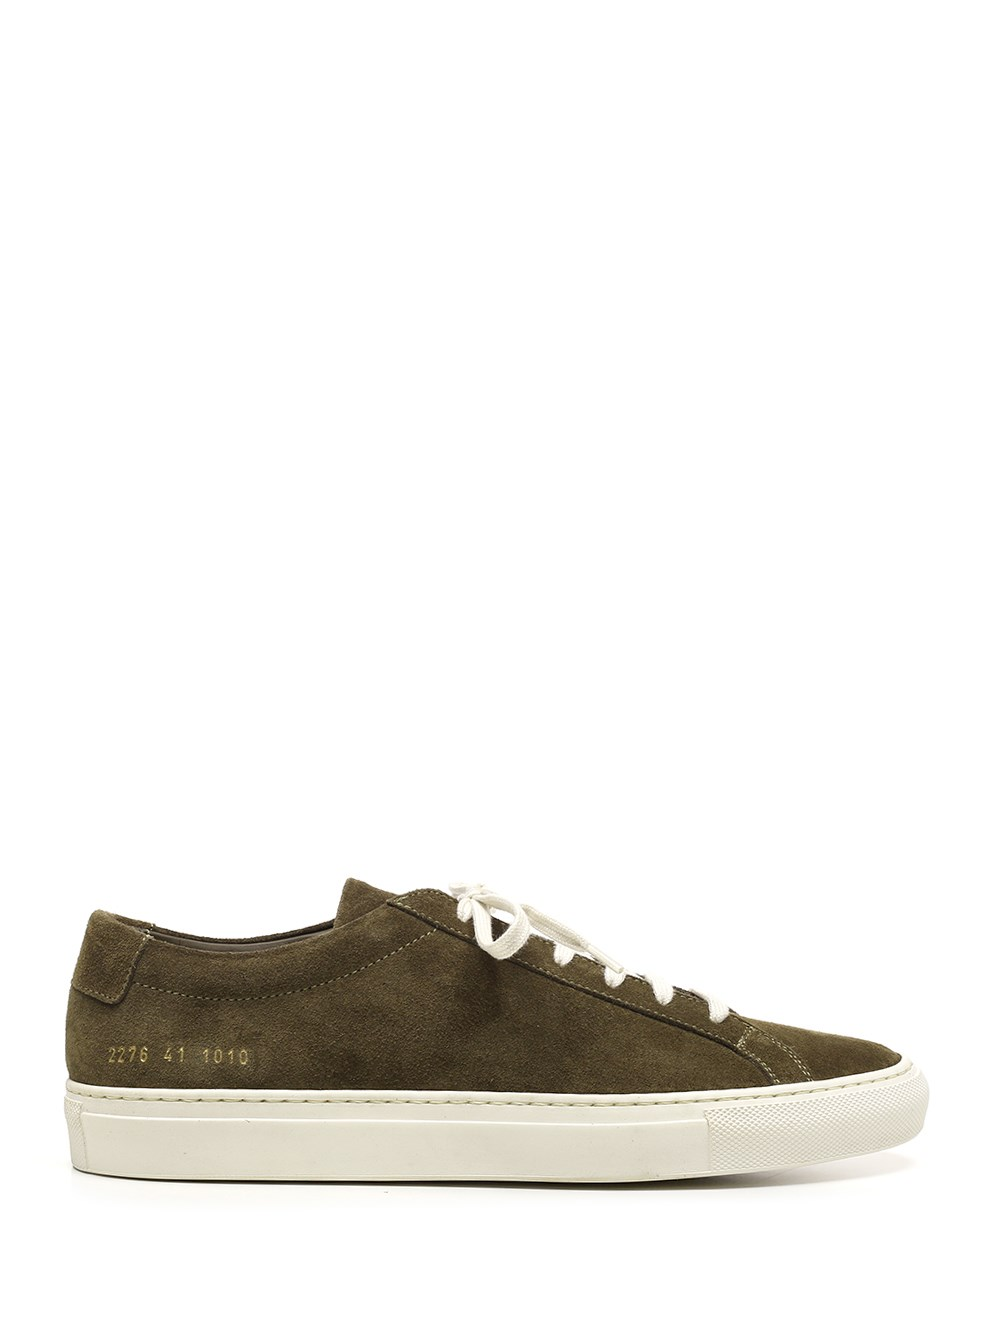 COMMON PROJECTS 2276 1010